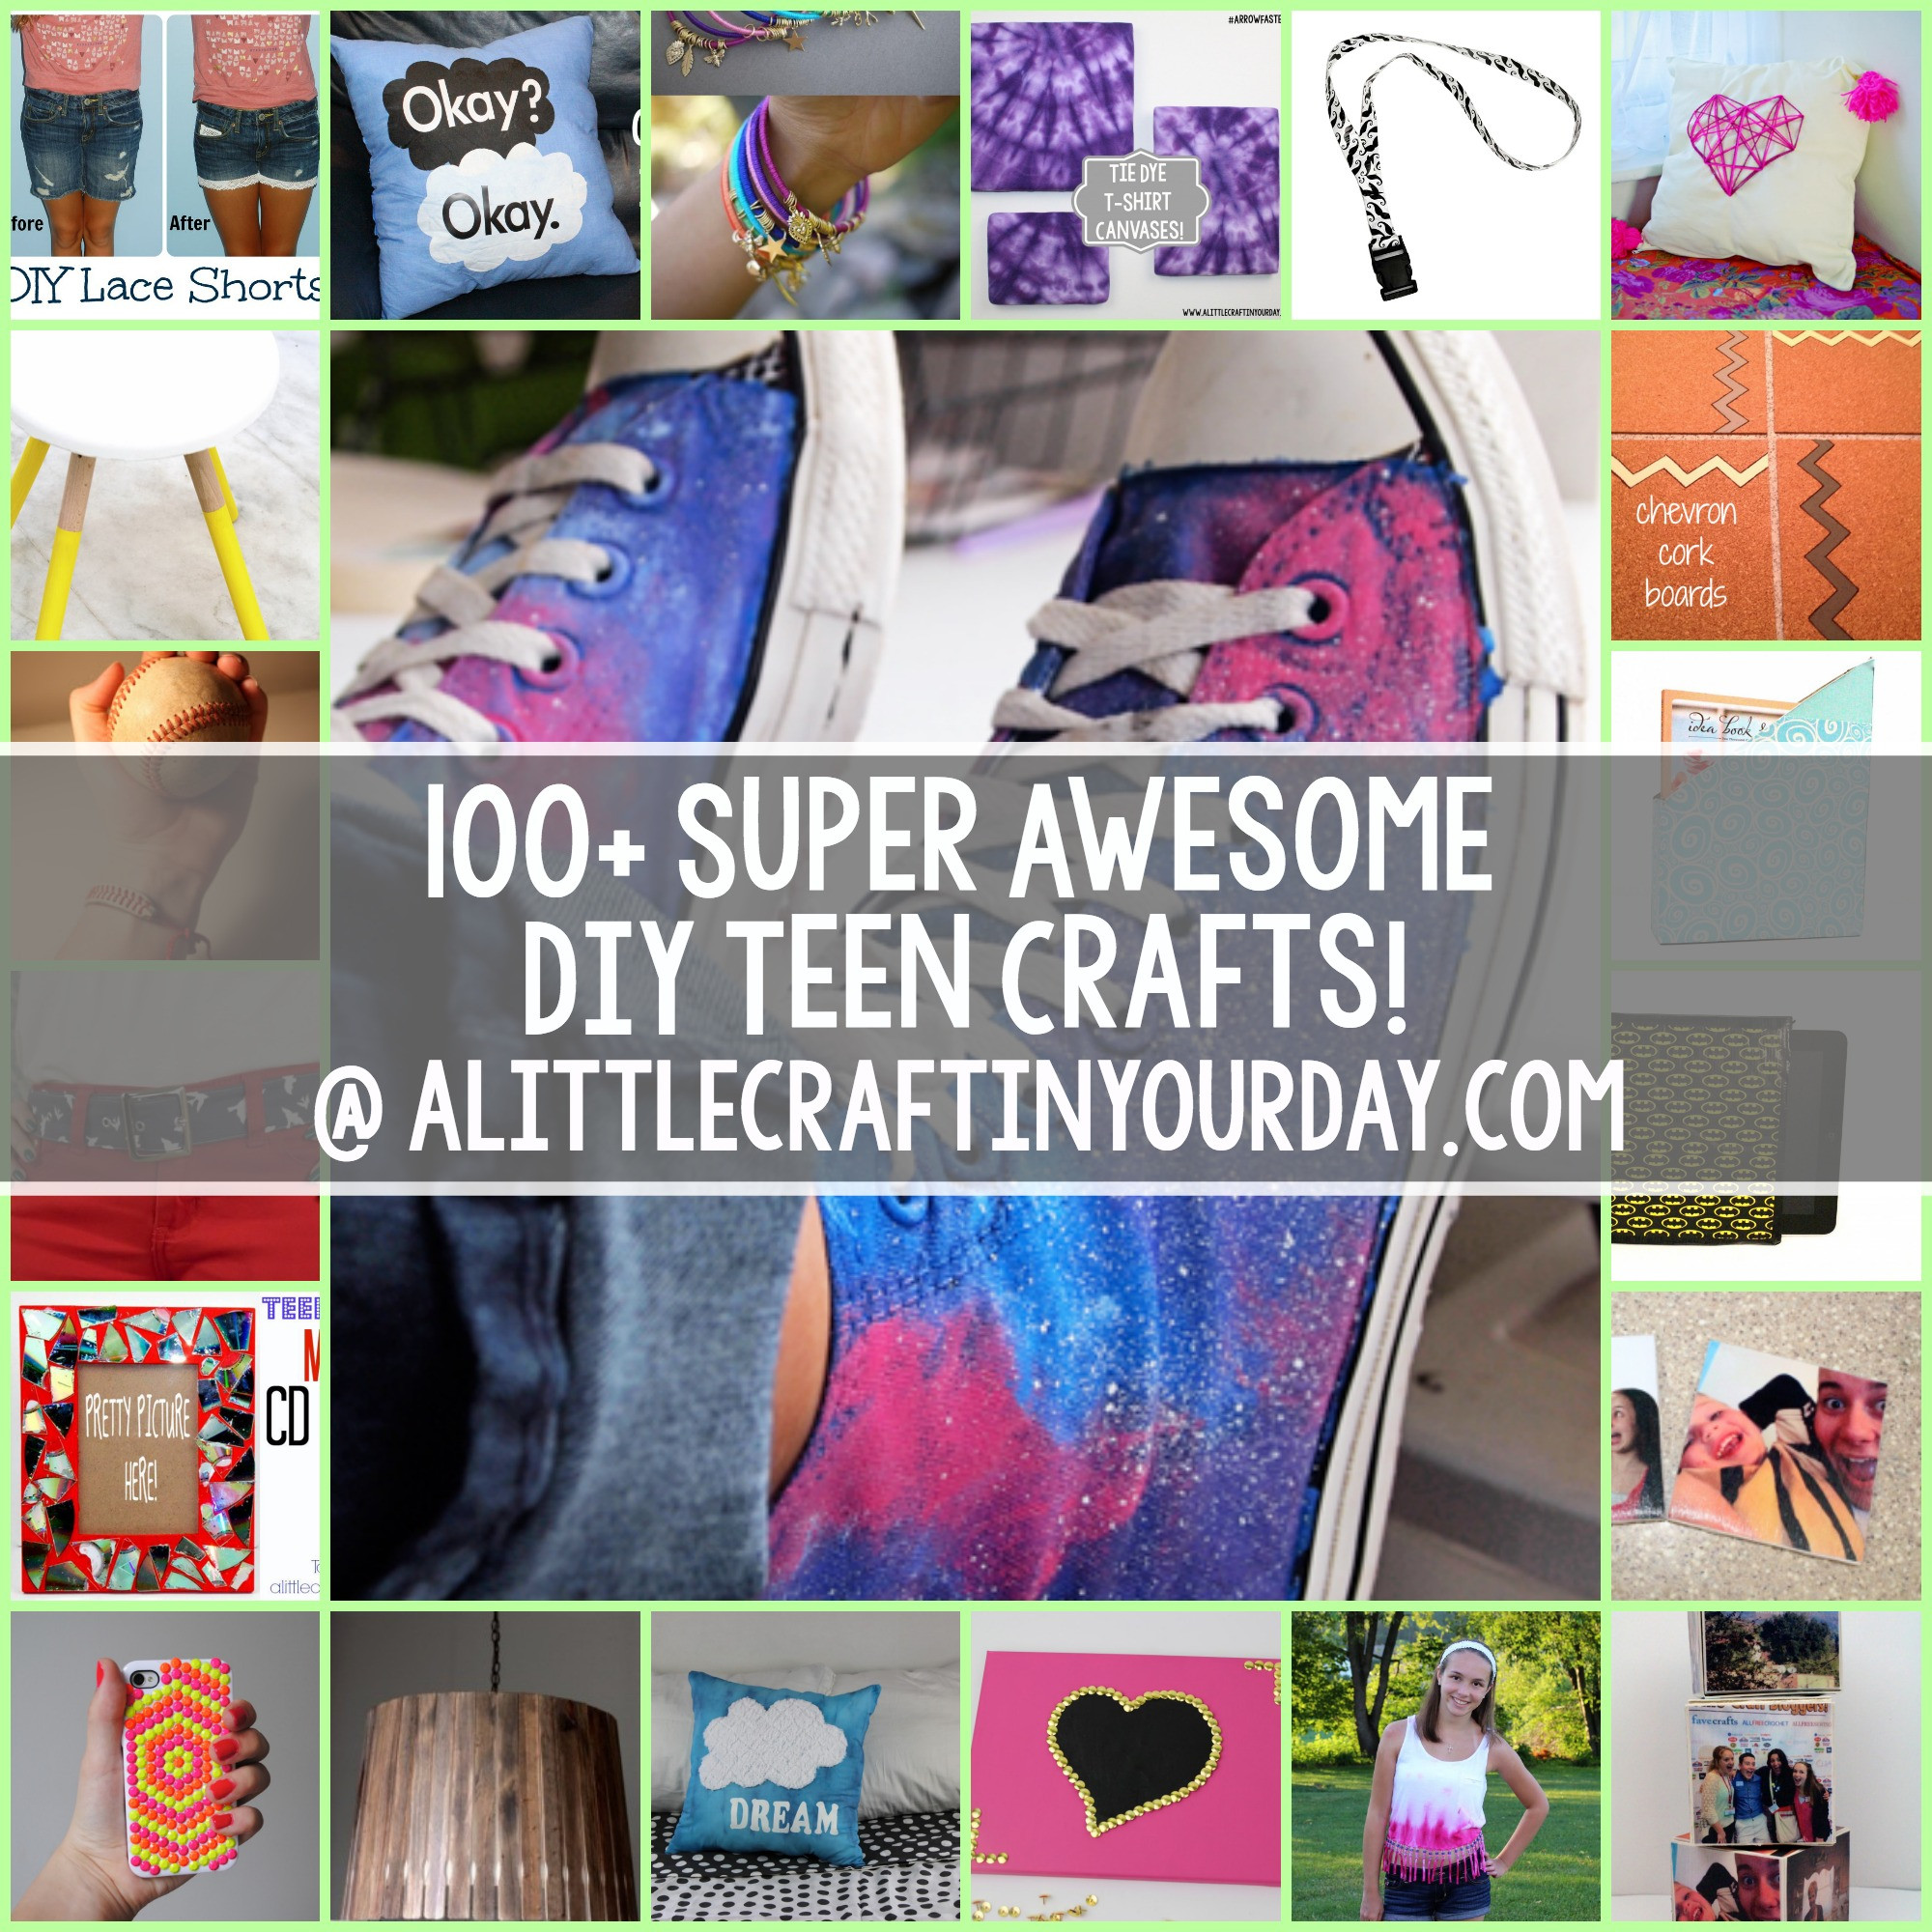 Best ideas about Craft Ideas For Teens . Save or Pin 100 Super Awesome Crafts for Teens A Little Craft In Now.